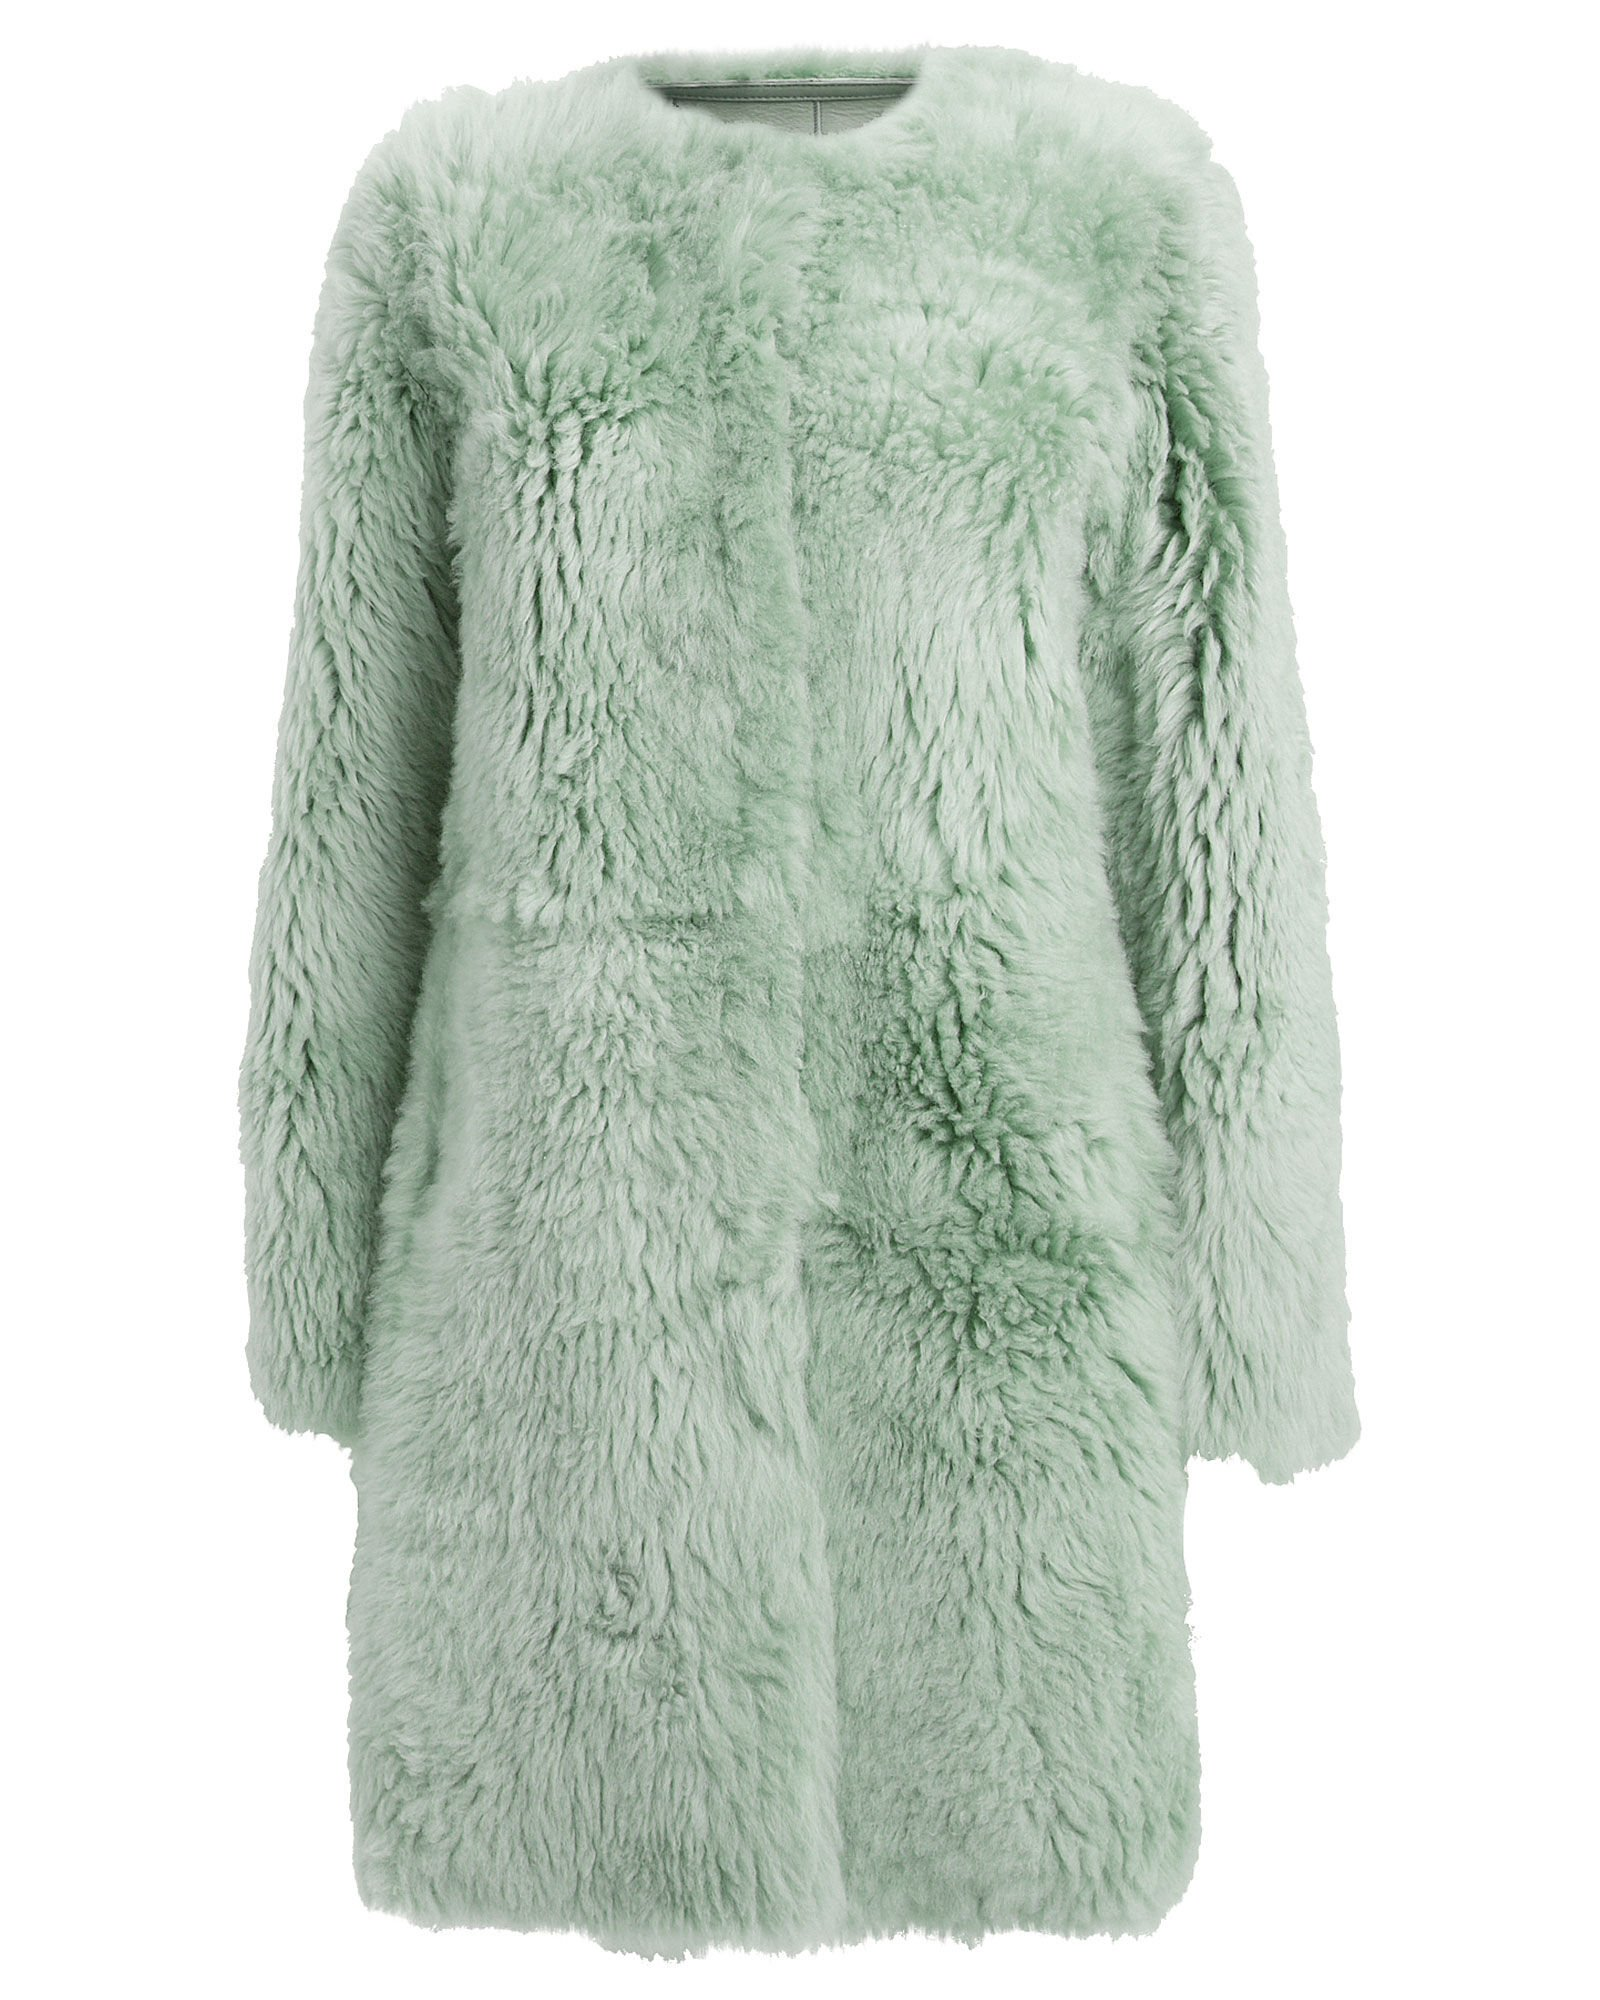 Reversible Merino Lamb Fur Coat, MINT, hi-res